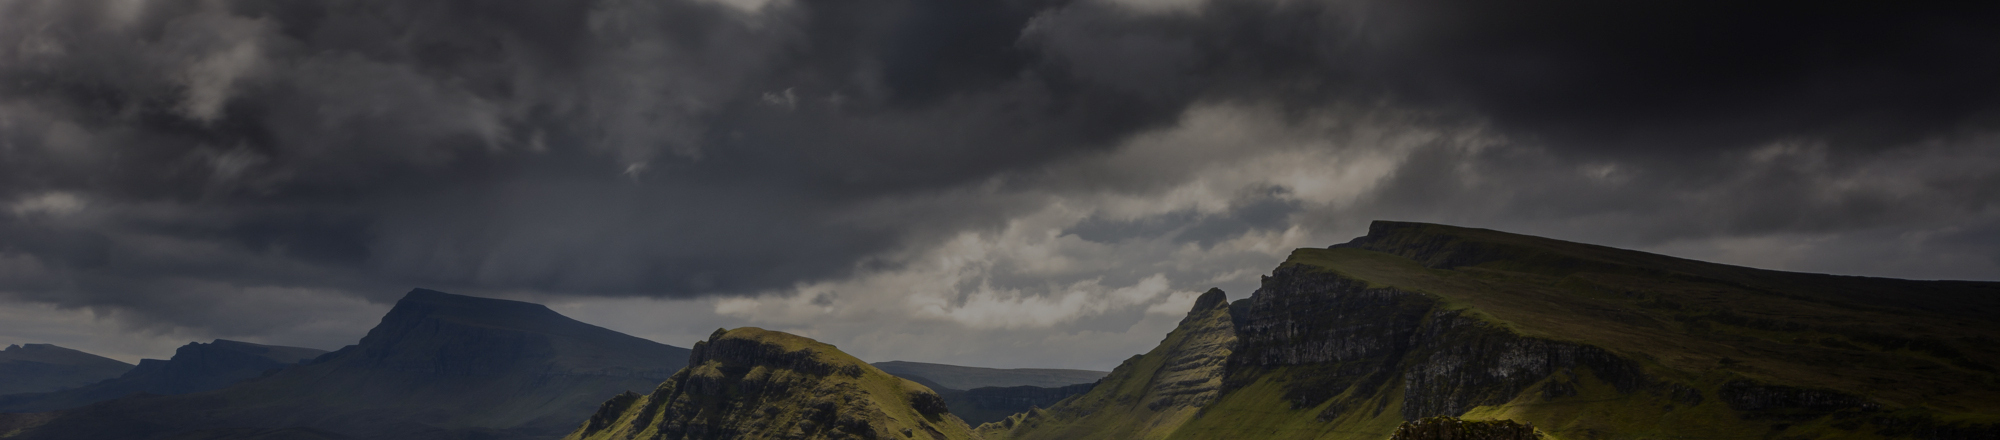 Hiking in the Highlands, Treks in Scotland, Tours Around the Highlands